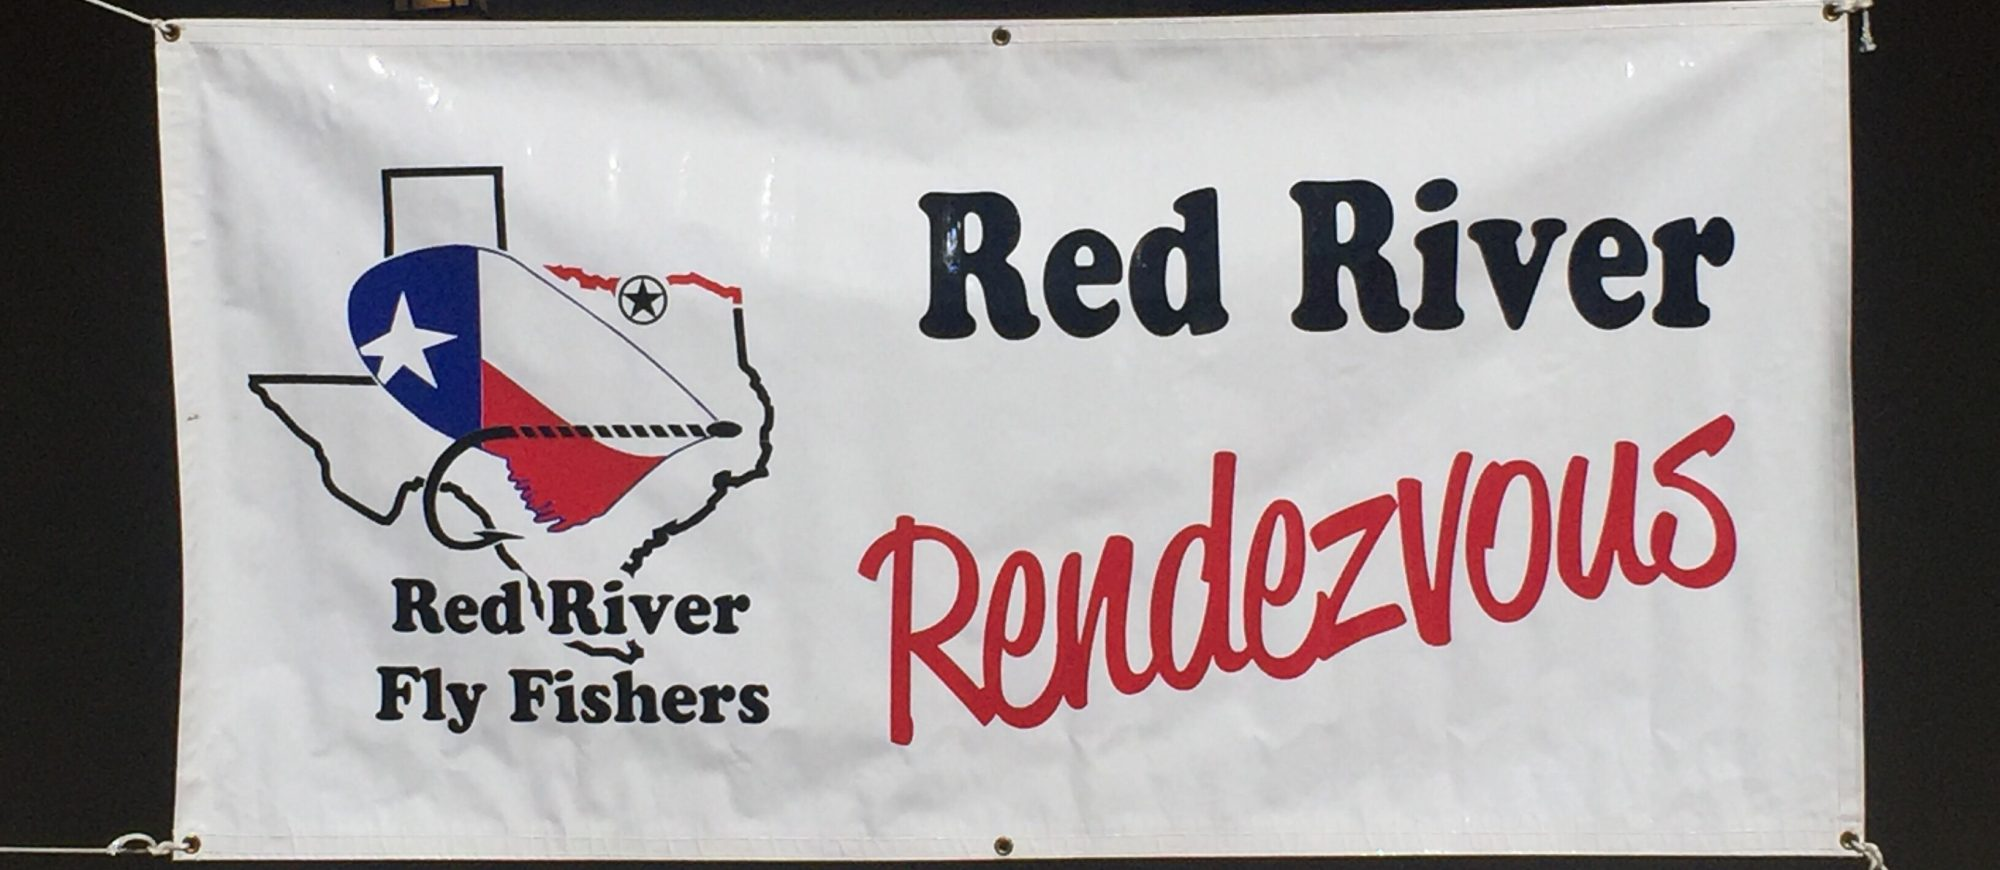 Red River Fly Fishers